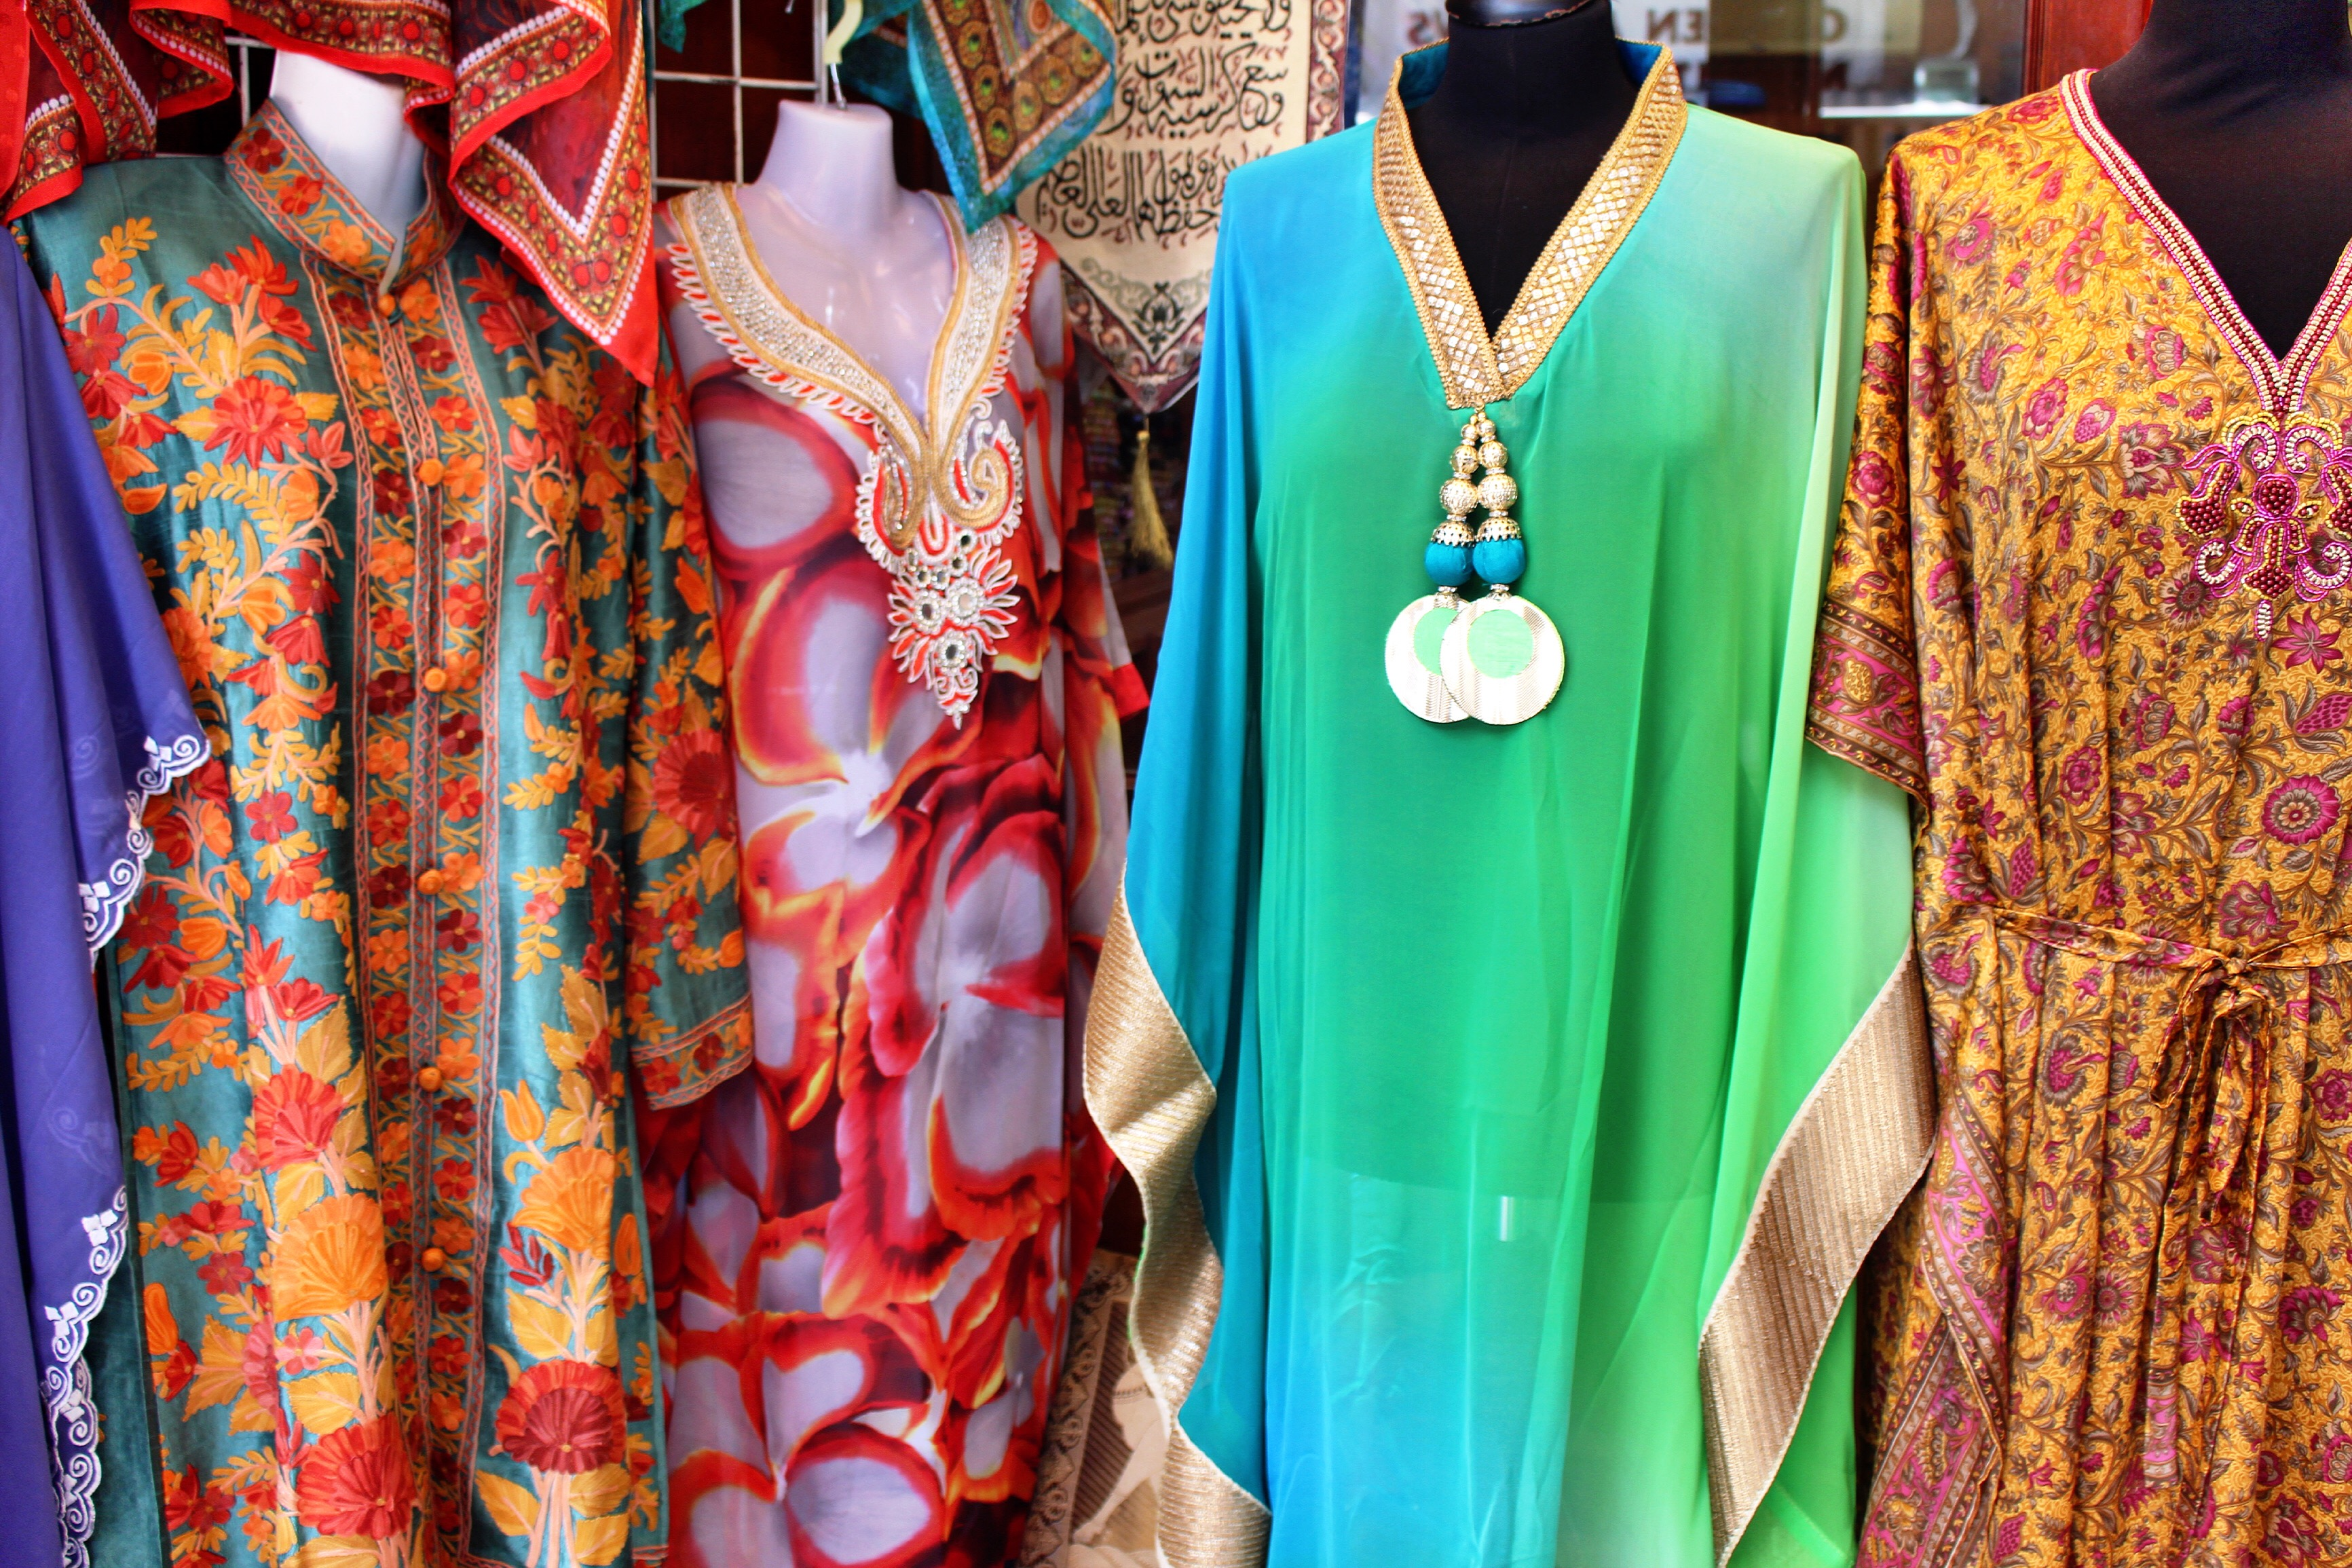 colorful-kaftans-souks-dubai